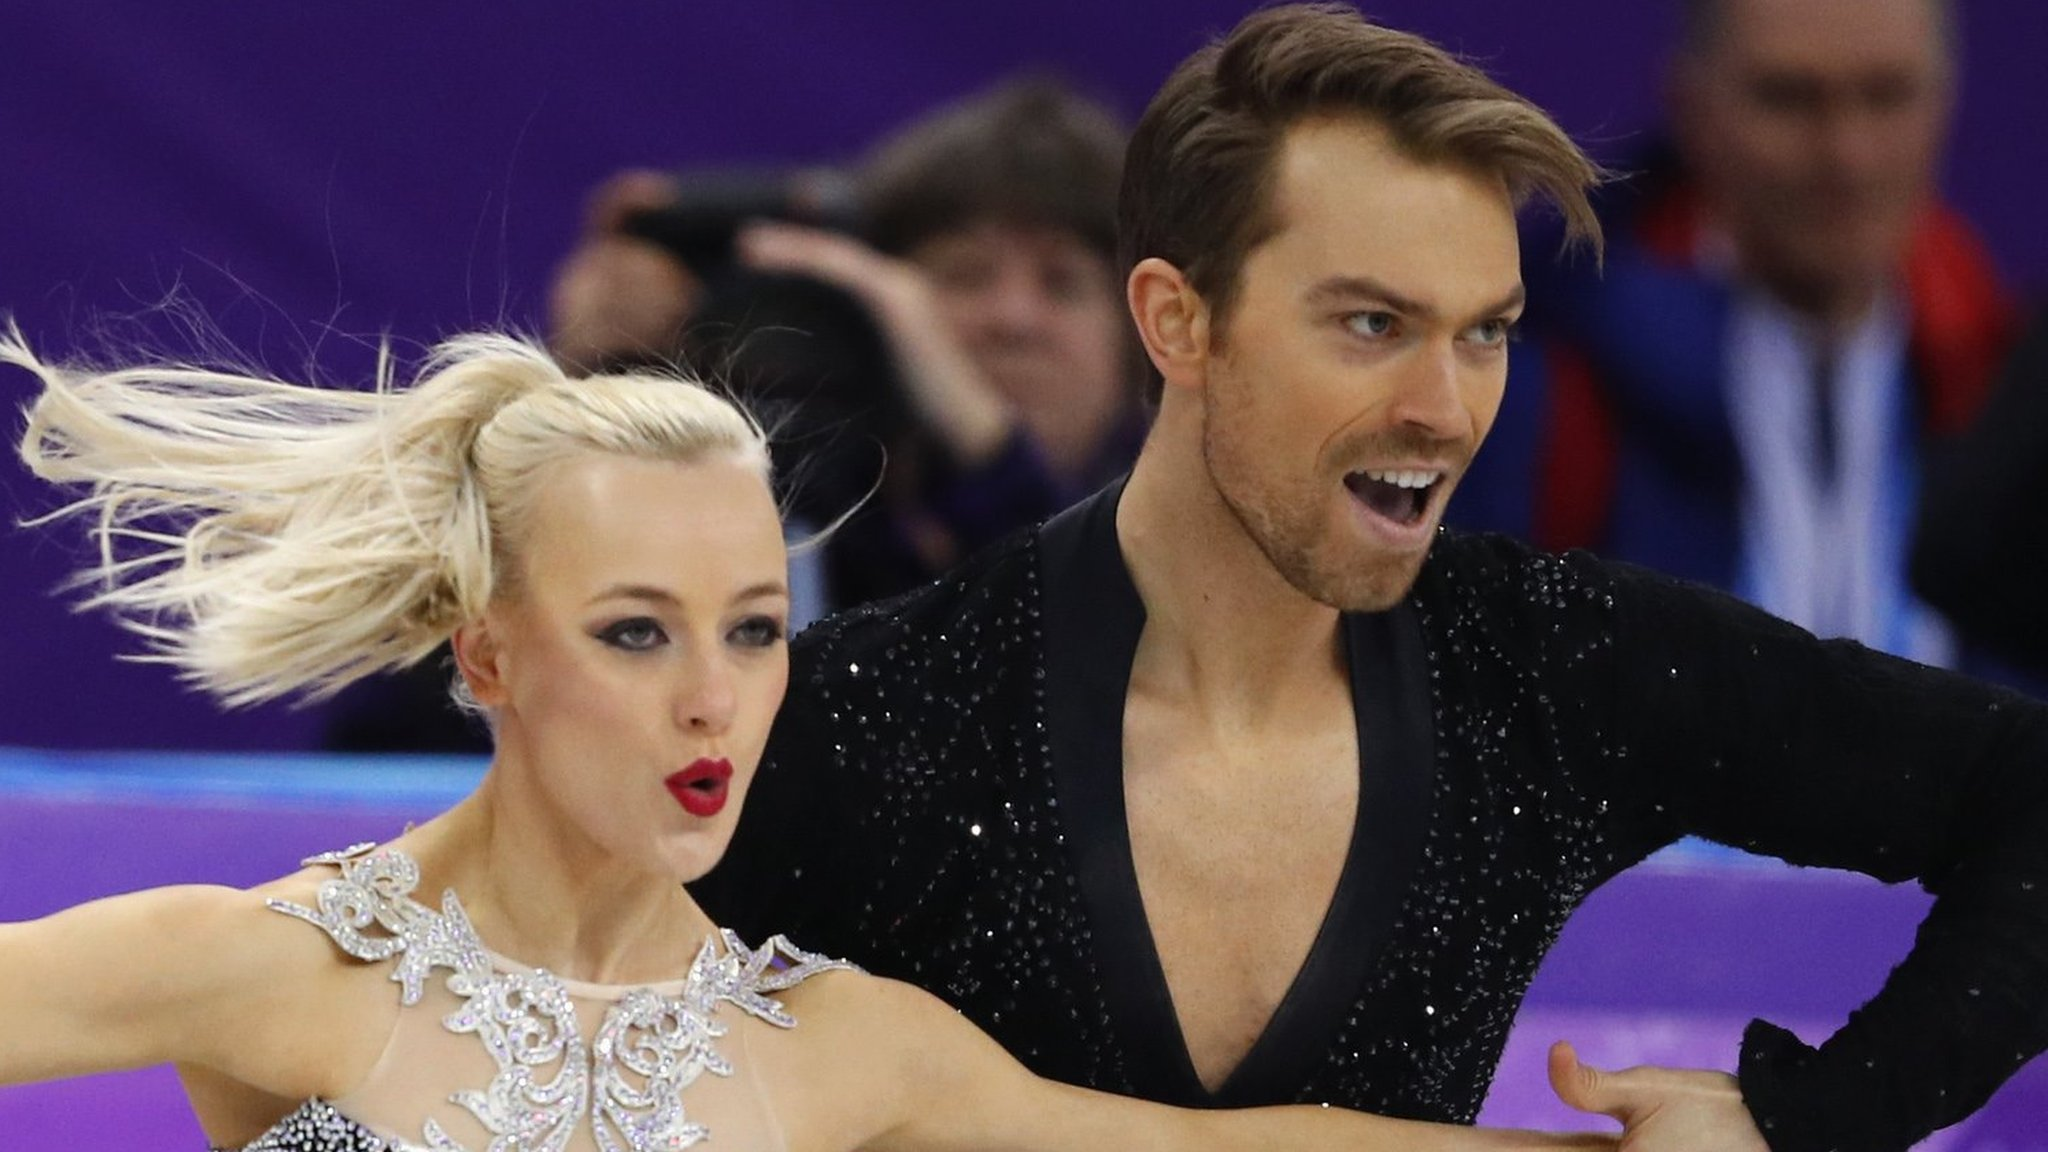 Winter Olympics: Great Britain's Penny Coomes and Nick Buckland advance in ice dance